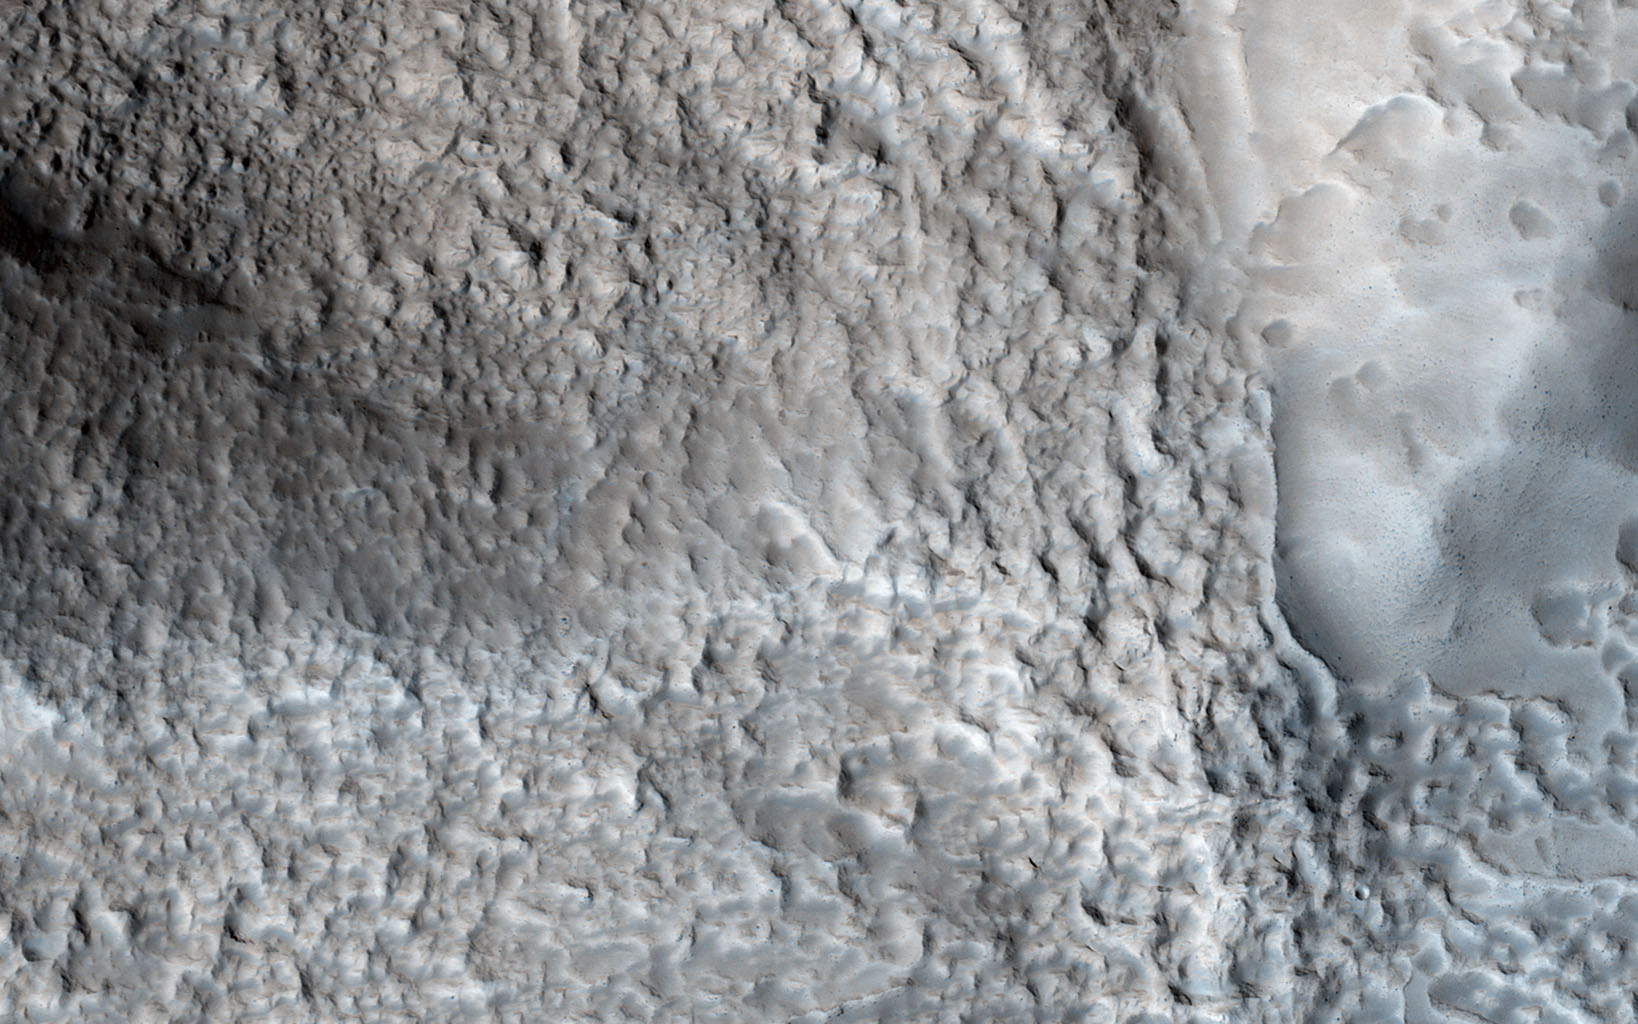 This image from NASA's Mars Reconnaissance Orbiter shows an impact crater with a diameter of approximately 2 kilometers located in the Coloe Fossae region of Mars.